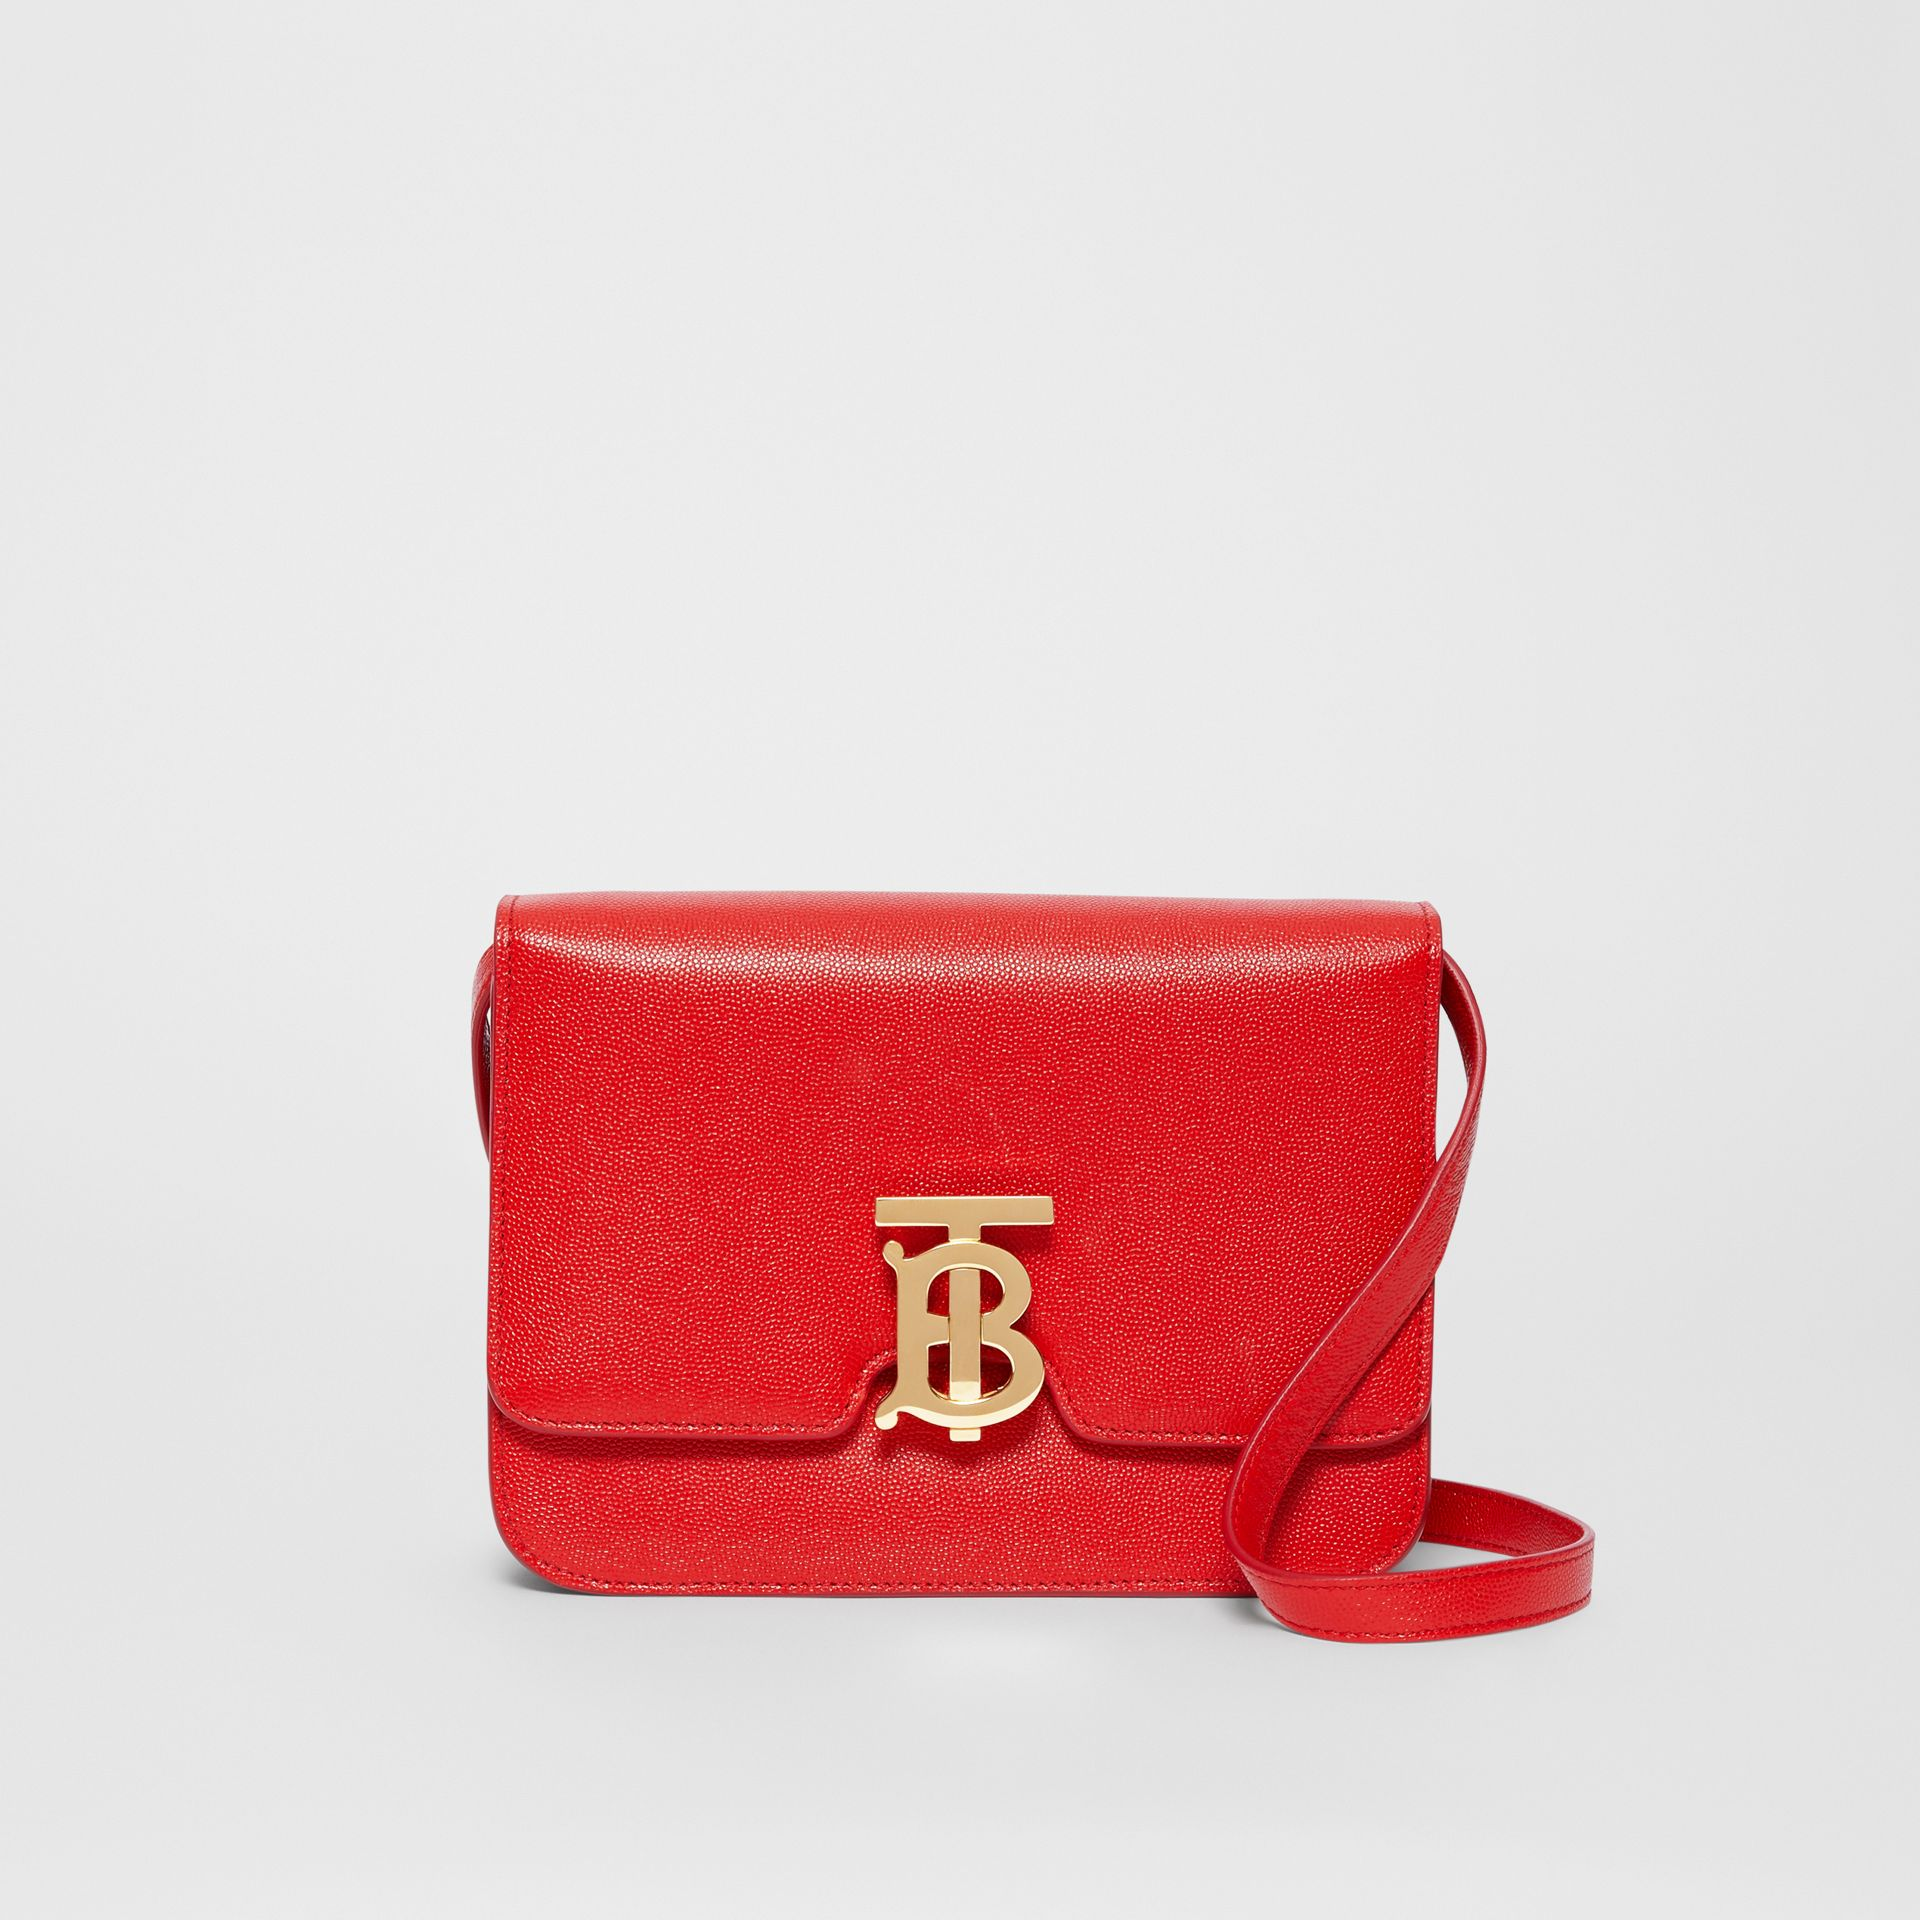 Small Grainy Leather TB Bag in Bright Red - Women | Burberry United States - gallery image 0